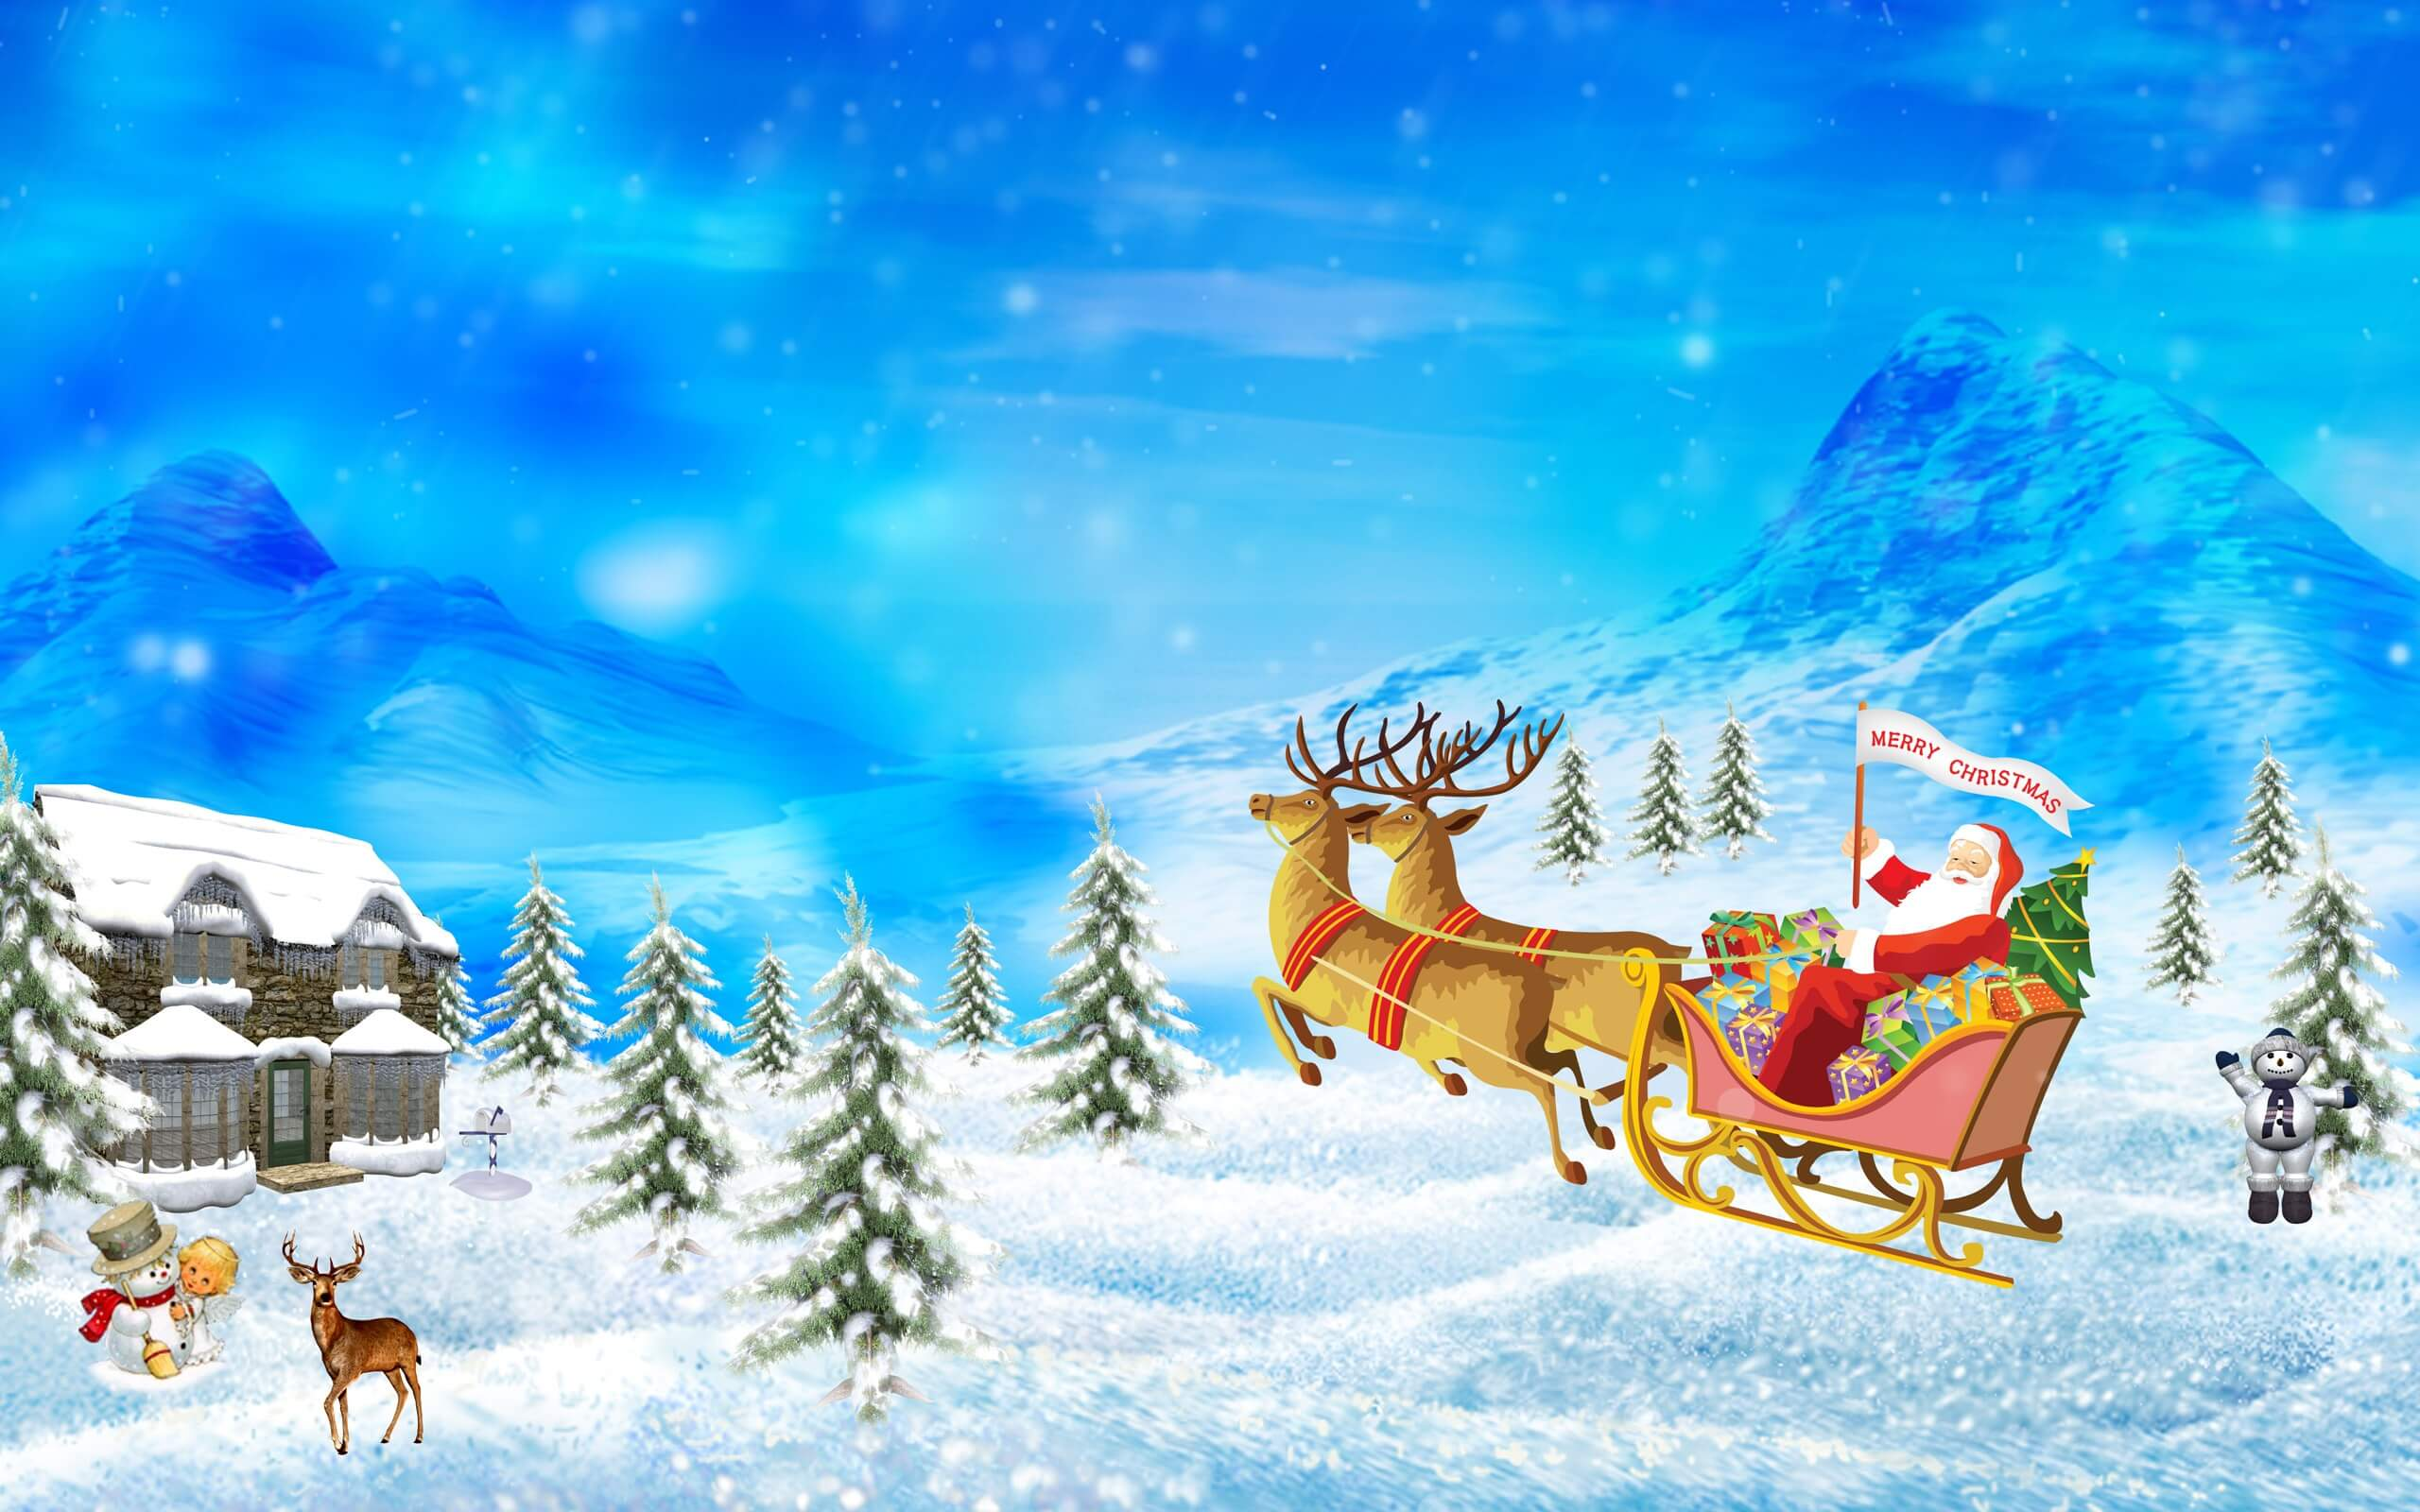 merry happy christmas santa claus rein deer snow man art hd wallpaper